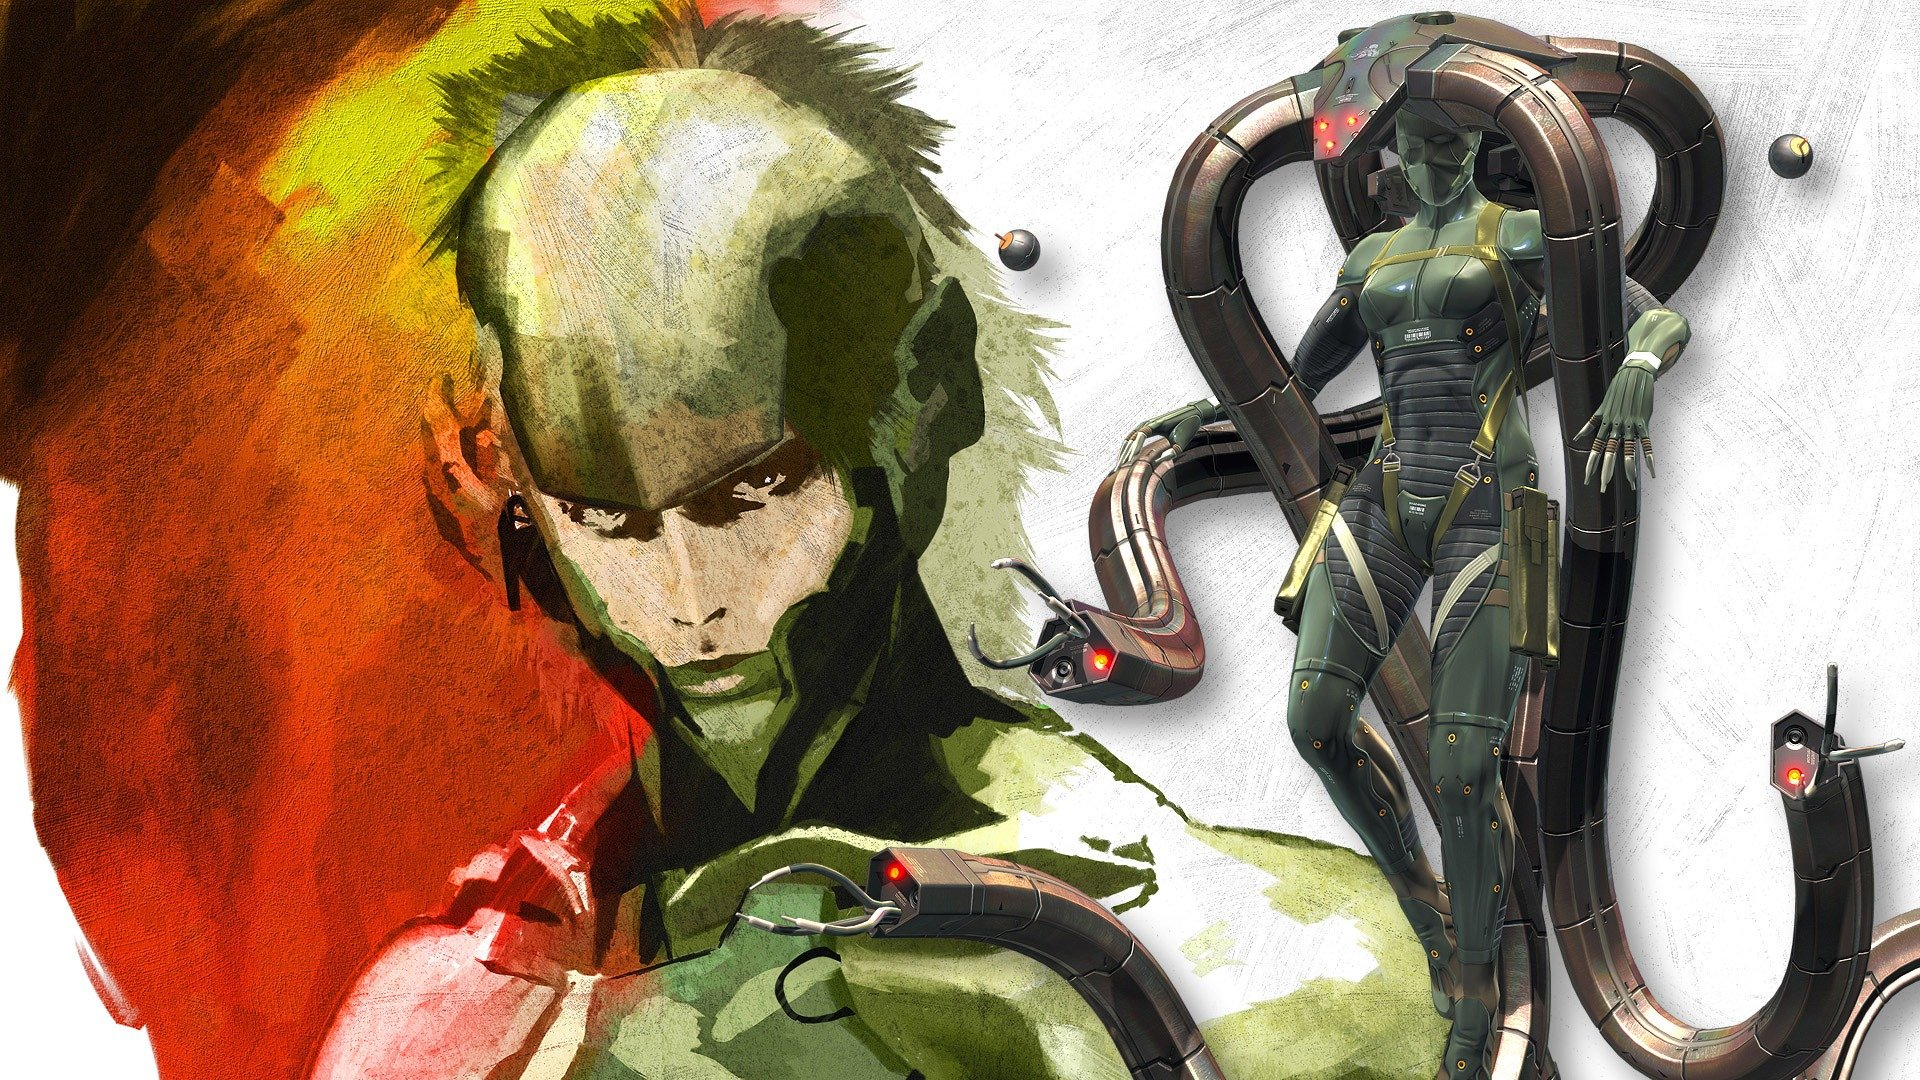 Download Hd 1080p Metal Gear Solid 4 Guns Of The Patriots Mgs 4